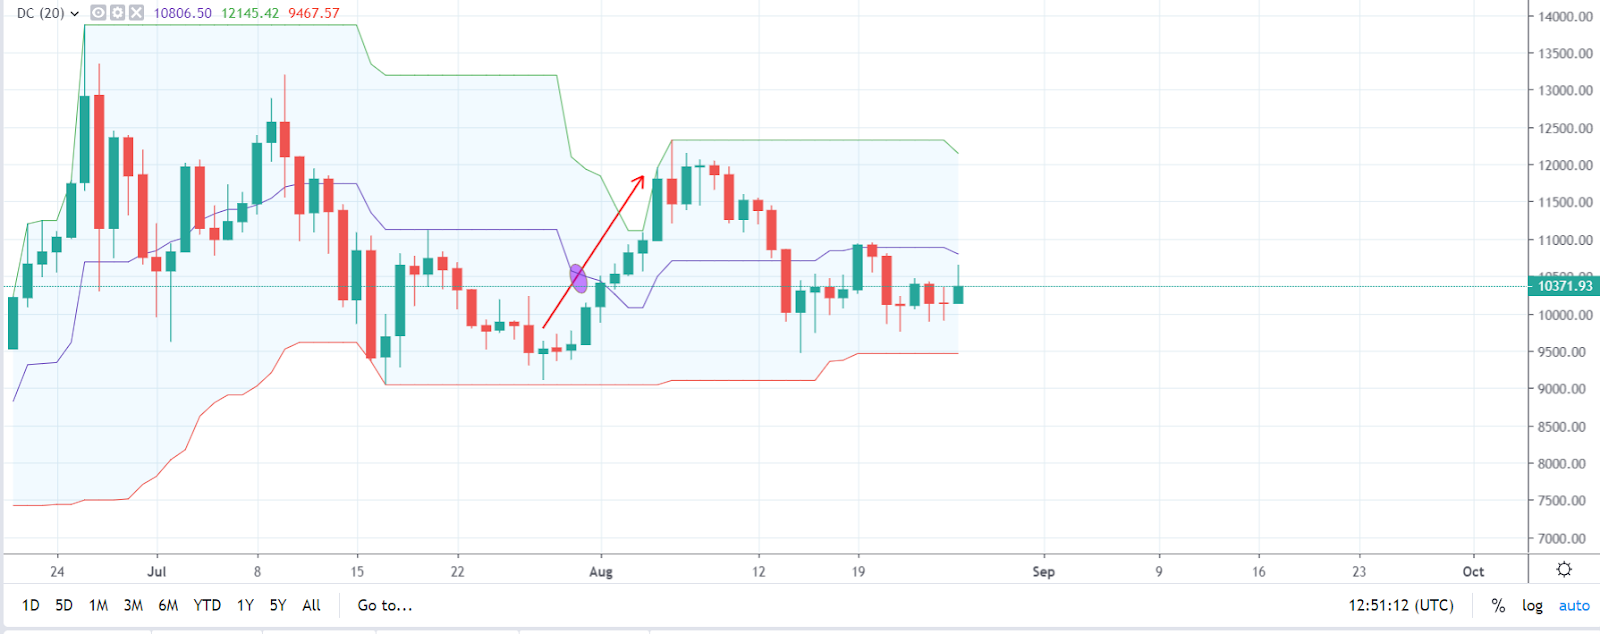 Bitcoin price chart: Trading the Center Line of the Donchian Channels Indicator